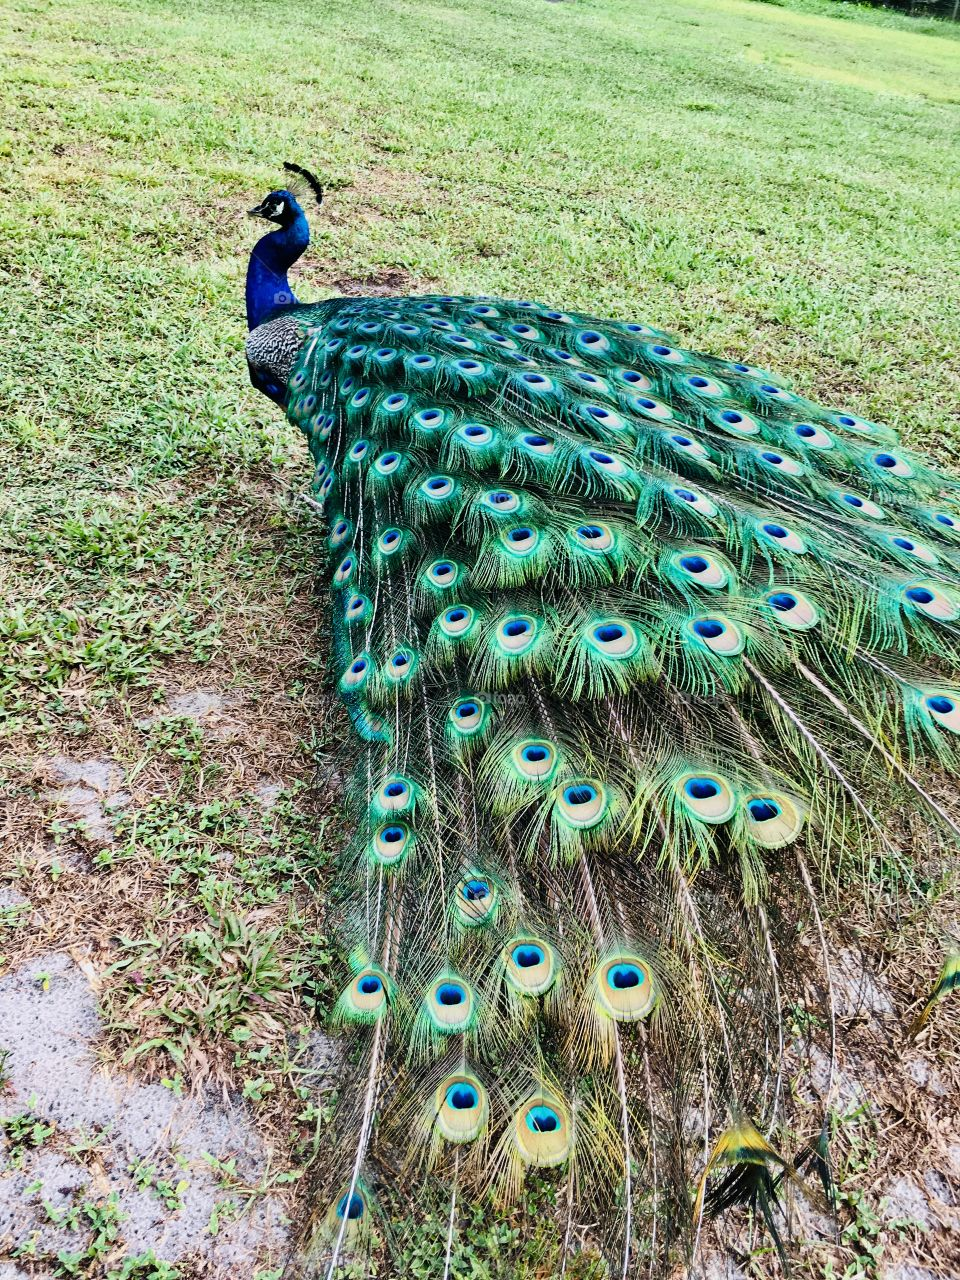 A beautiful peacock in a field of green grass in Florida